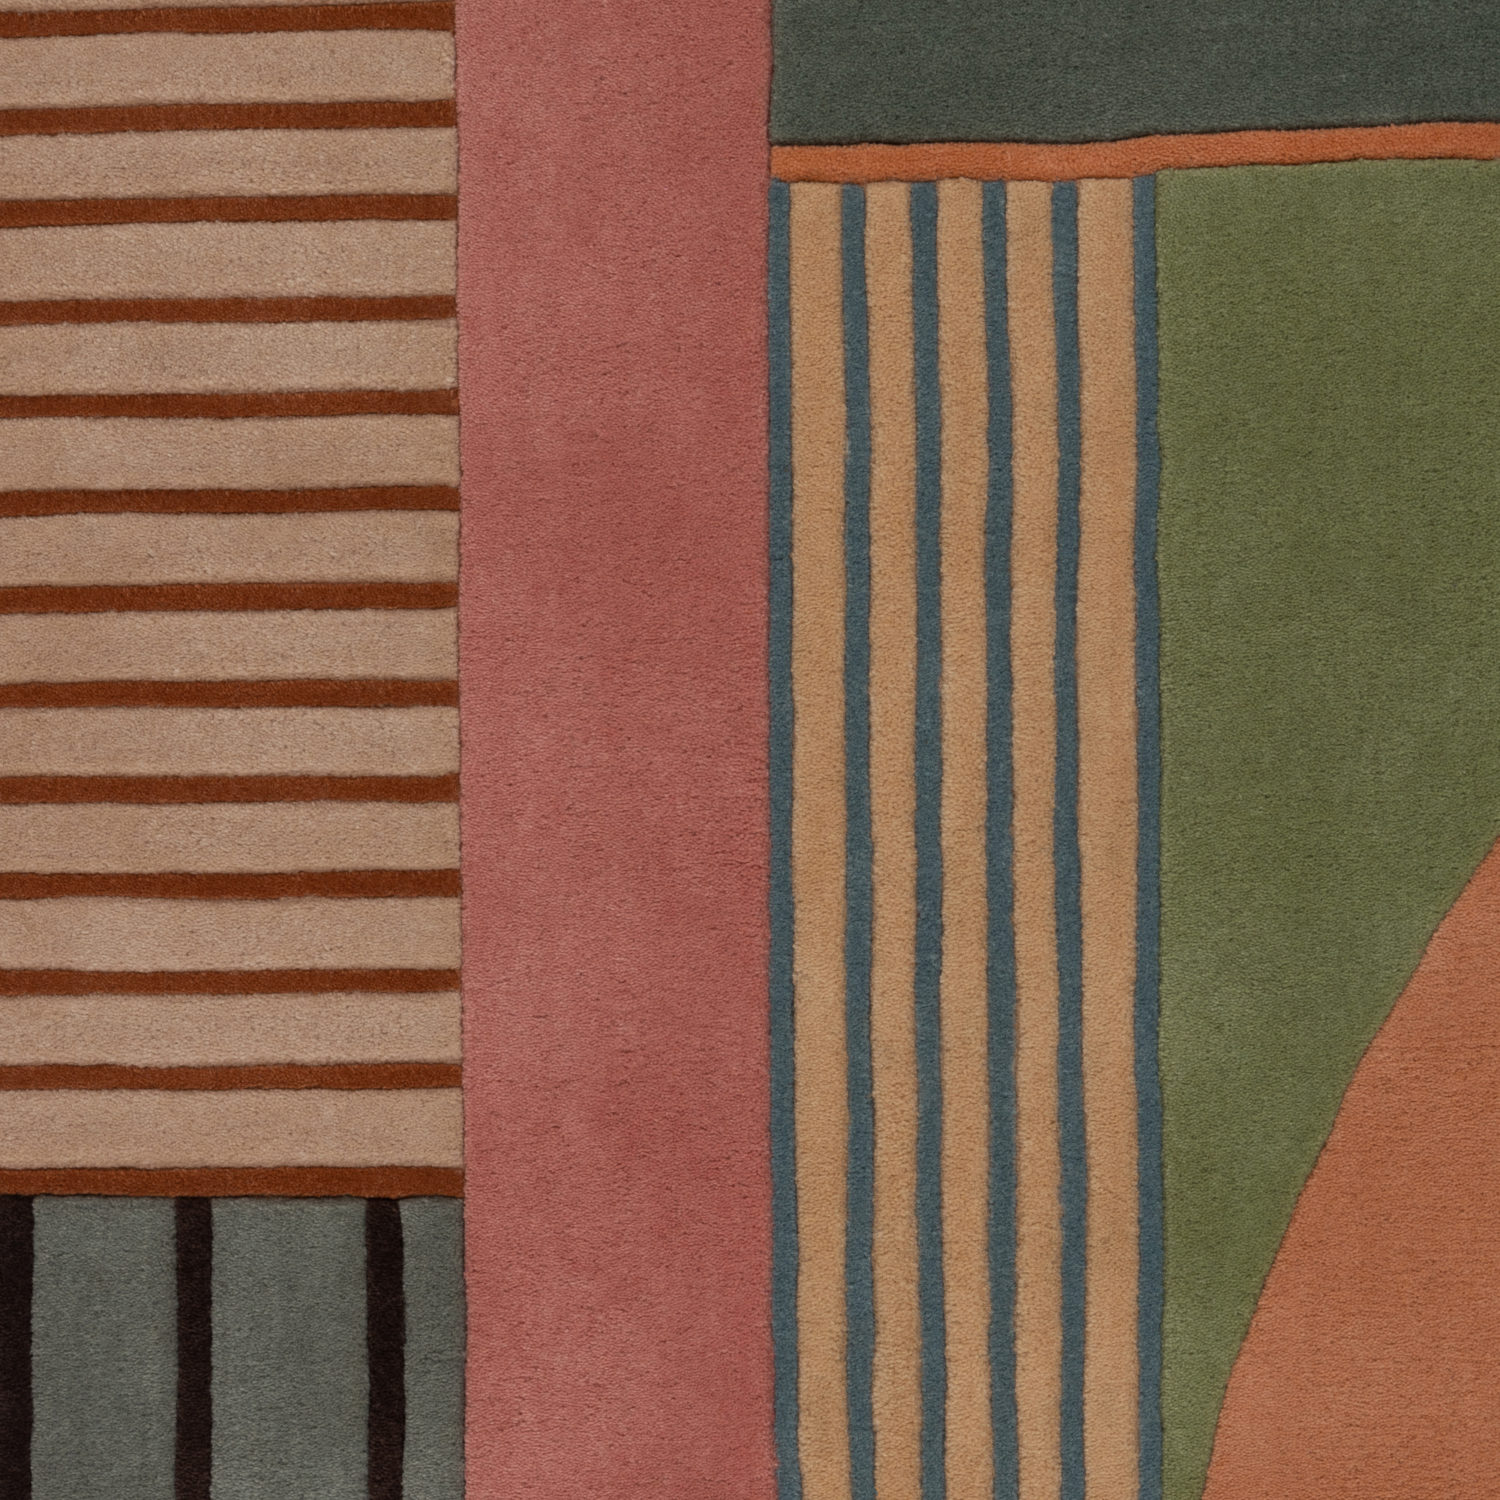 Complimentary colours that emphasise the design